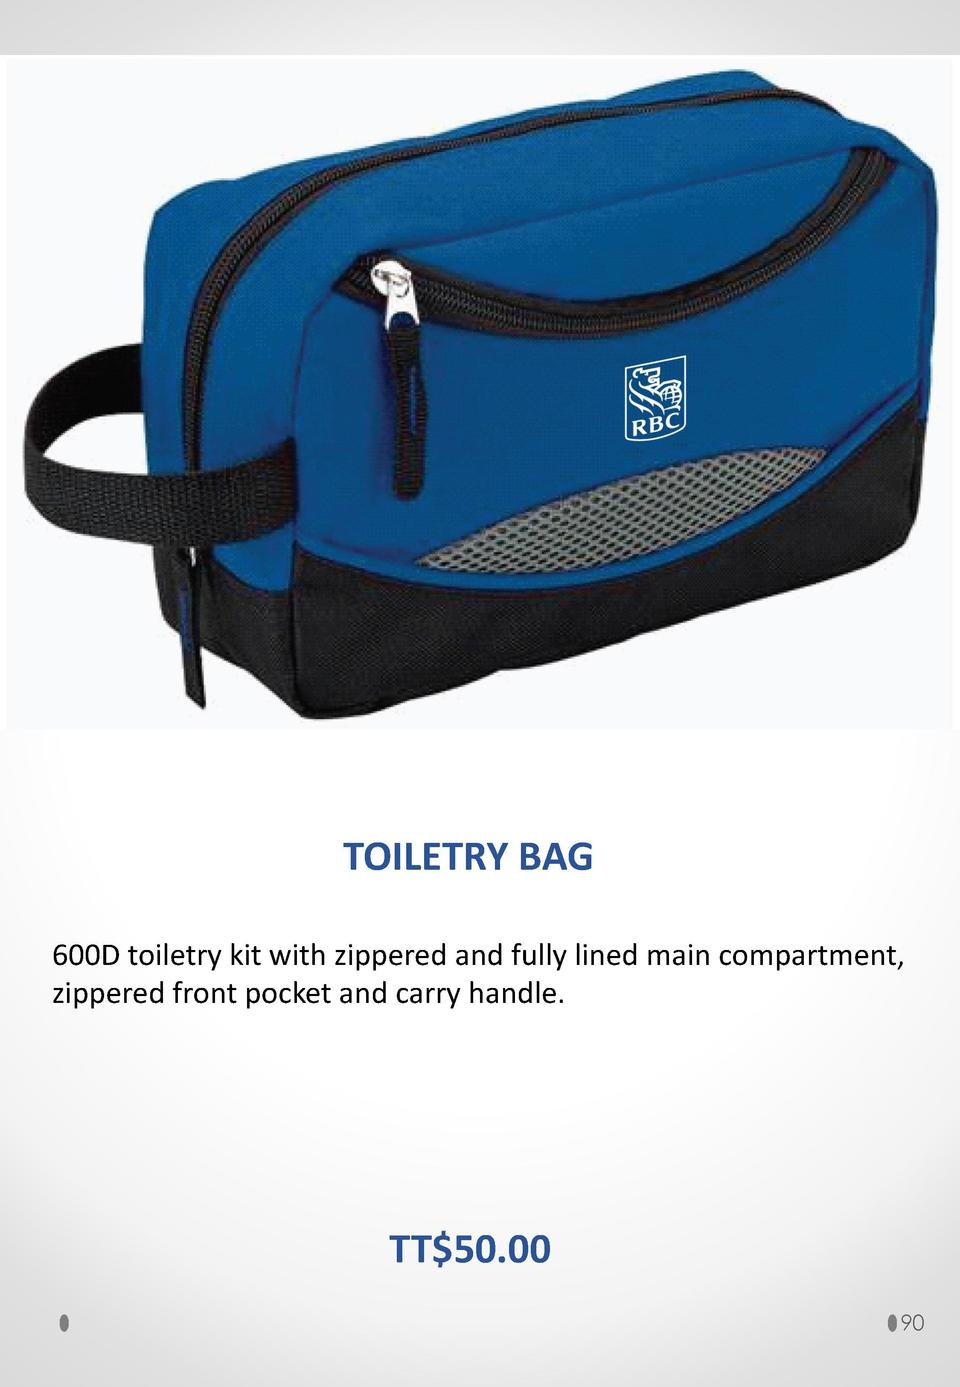 Branded Merchandise 150 In One Electronics Projects Kit More Mailbag Monday Youtube Toiletry Bag 600d With Zippered And Fully Lined Main Compartment Front Pocket